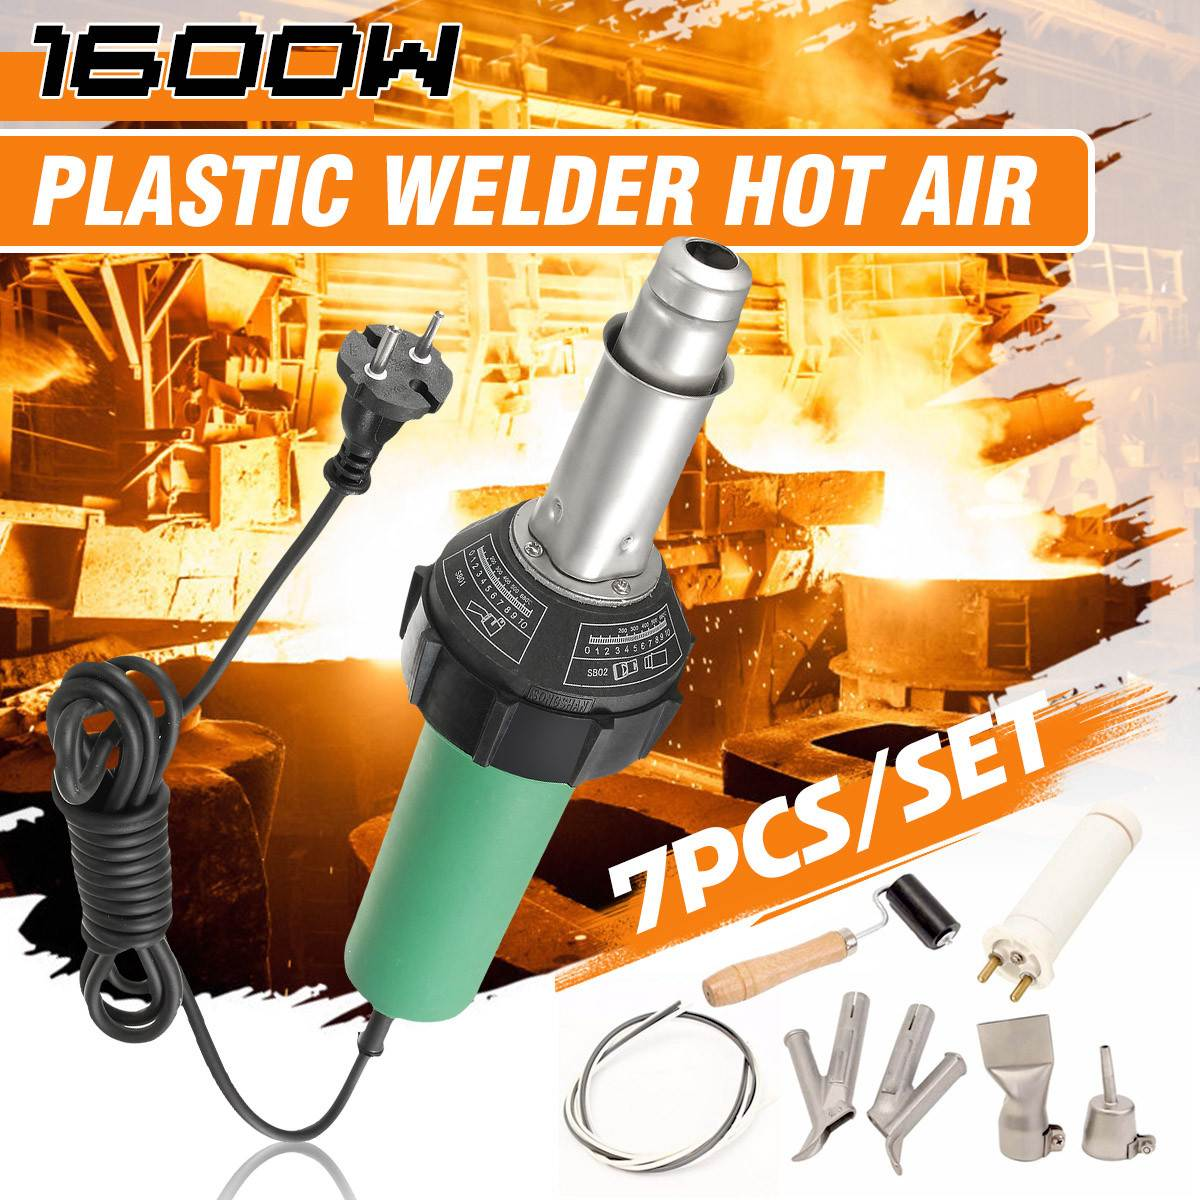 7PCS/Set AC 220V 1600W 50/60Hz Hot Air Torch Plastic Welding-Gun For Welder + Nozzle Welding+Heating Lement